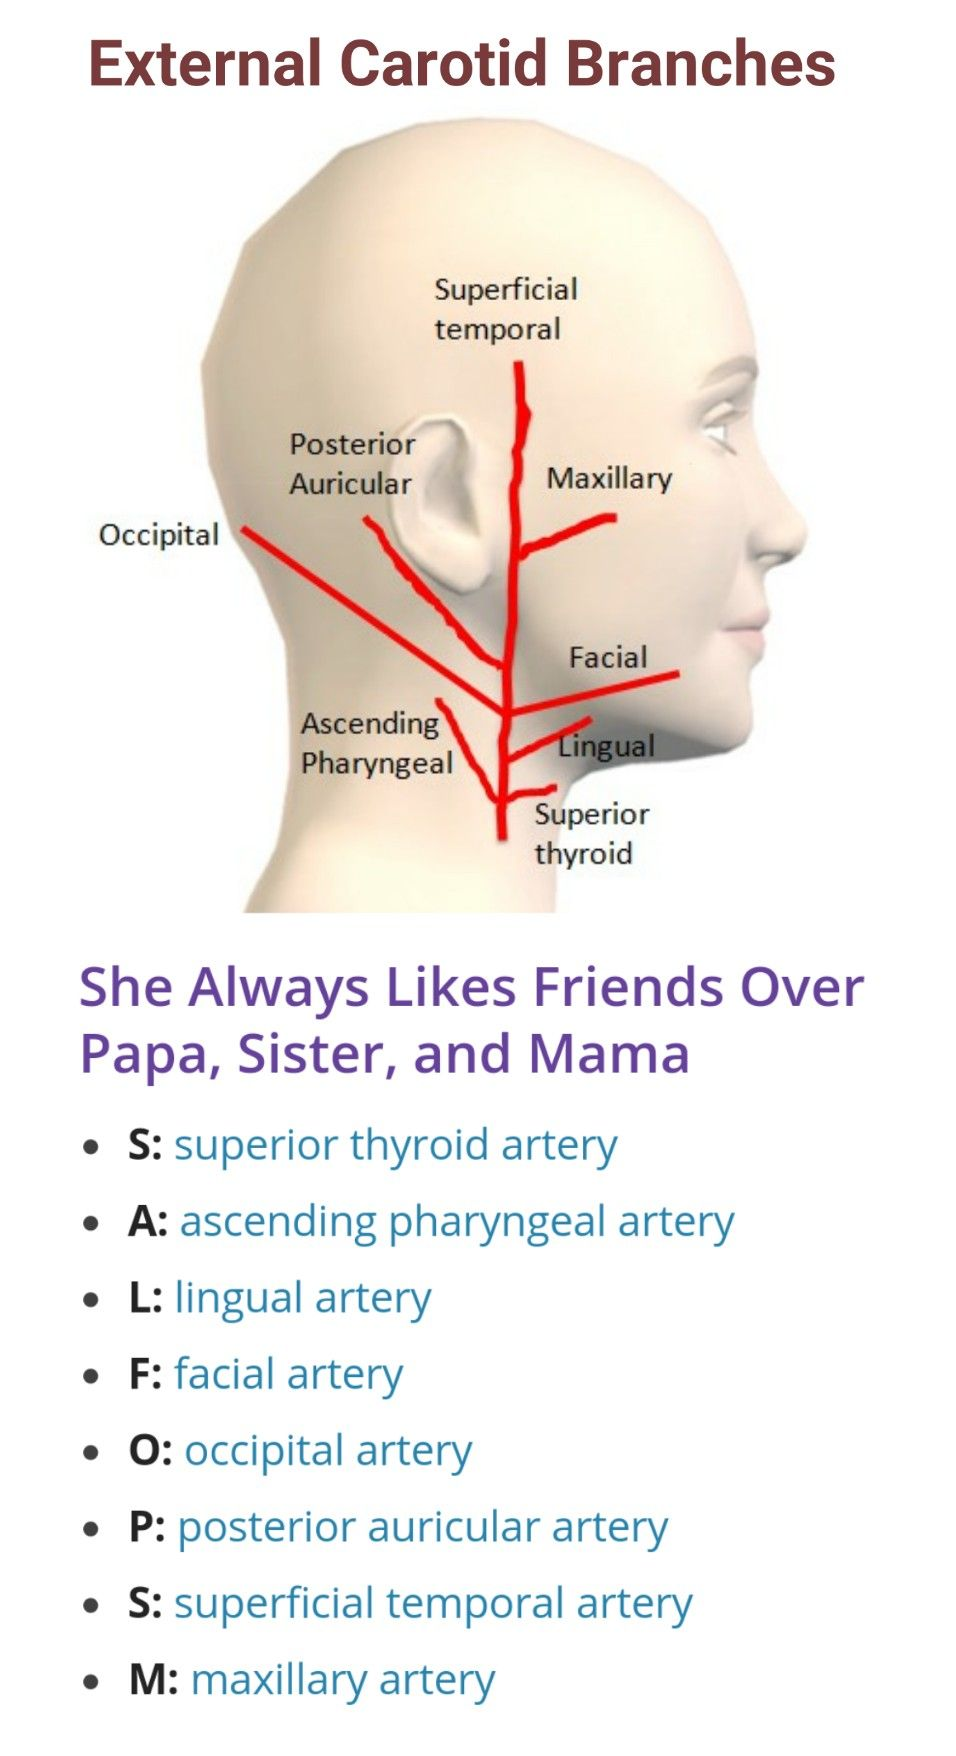 Branches of External Carotid Artery ... | Arteries & Veins ...